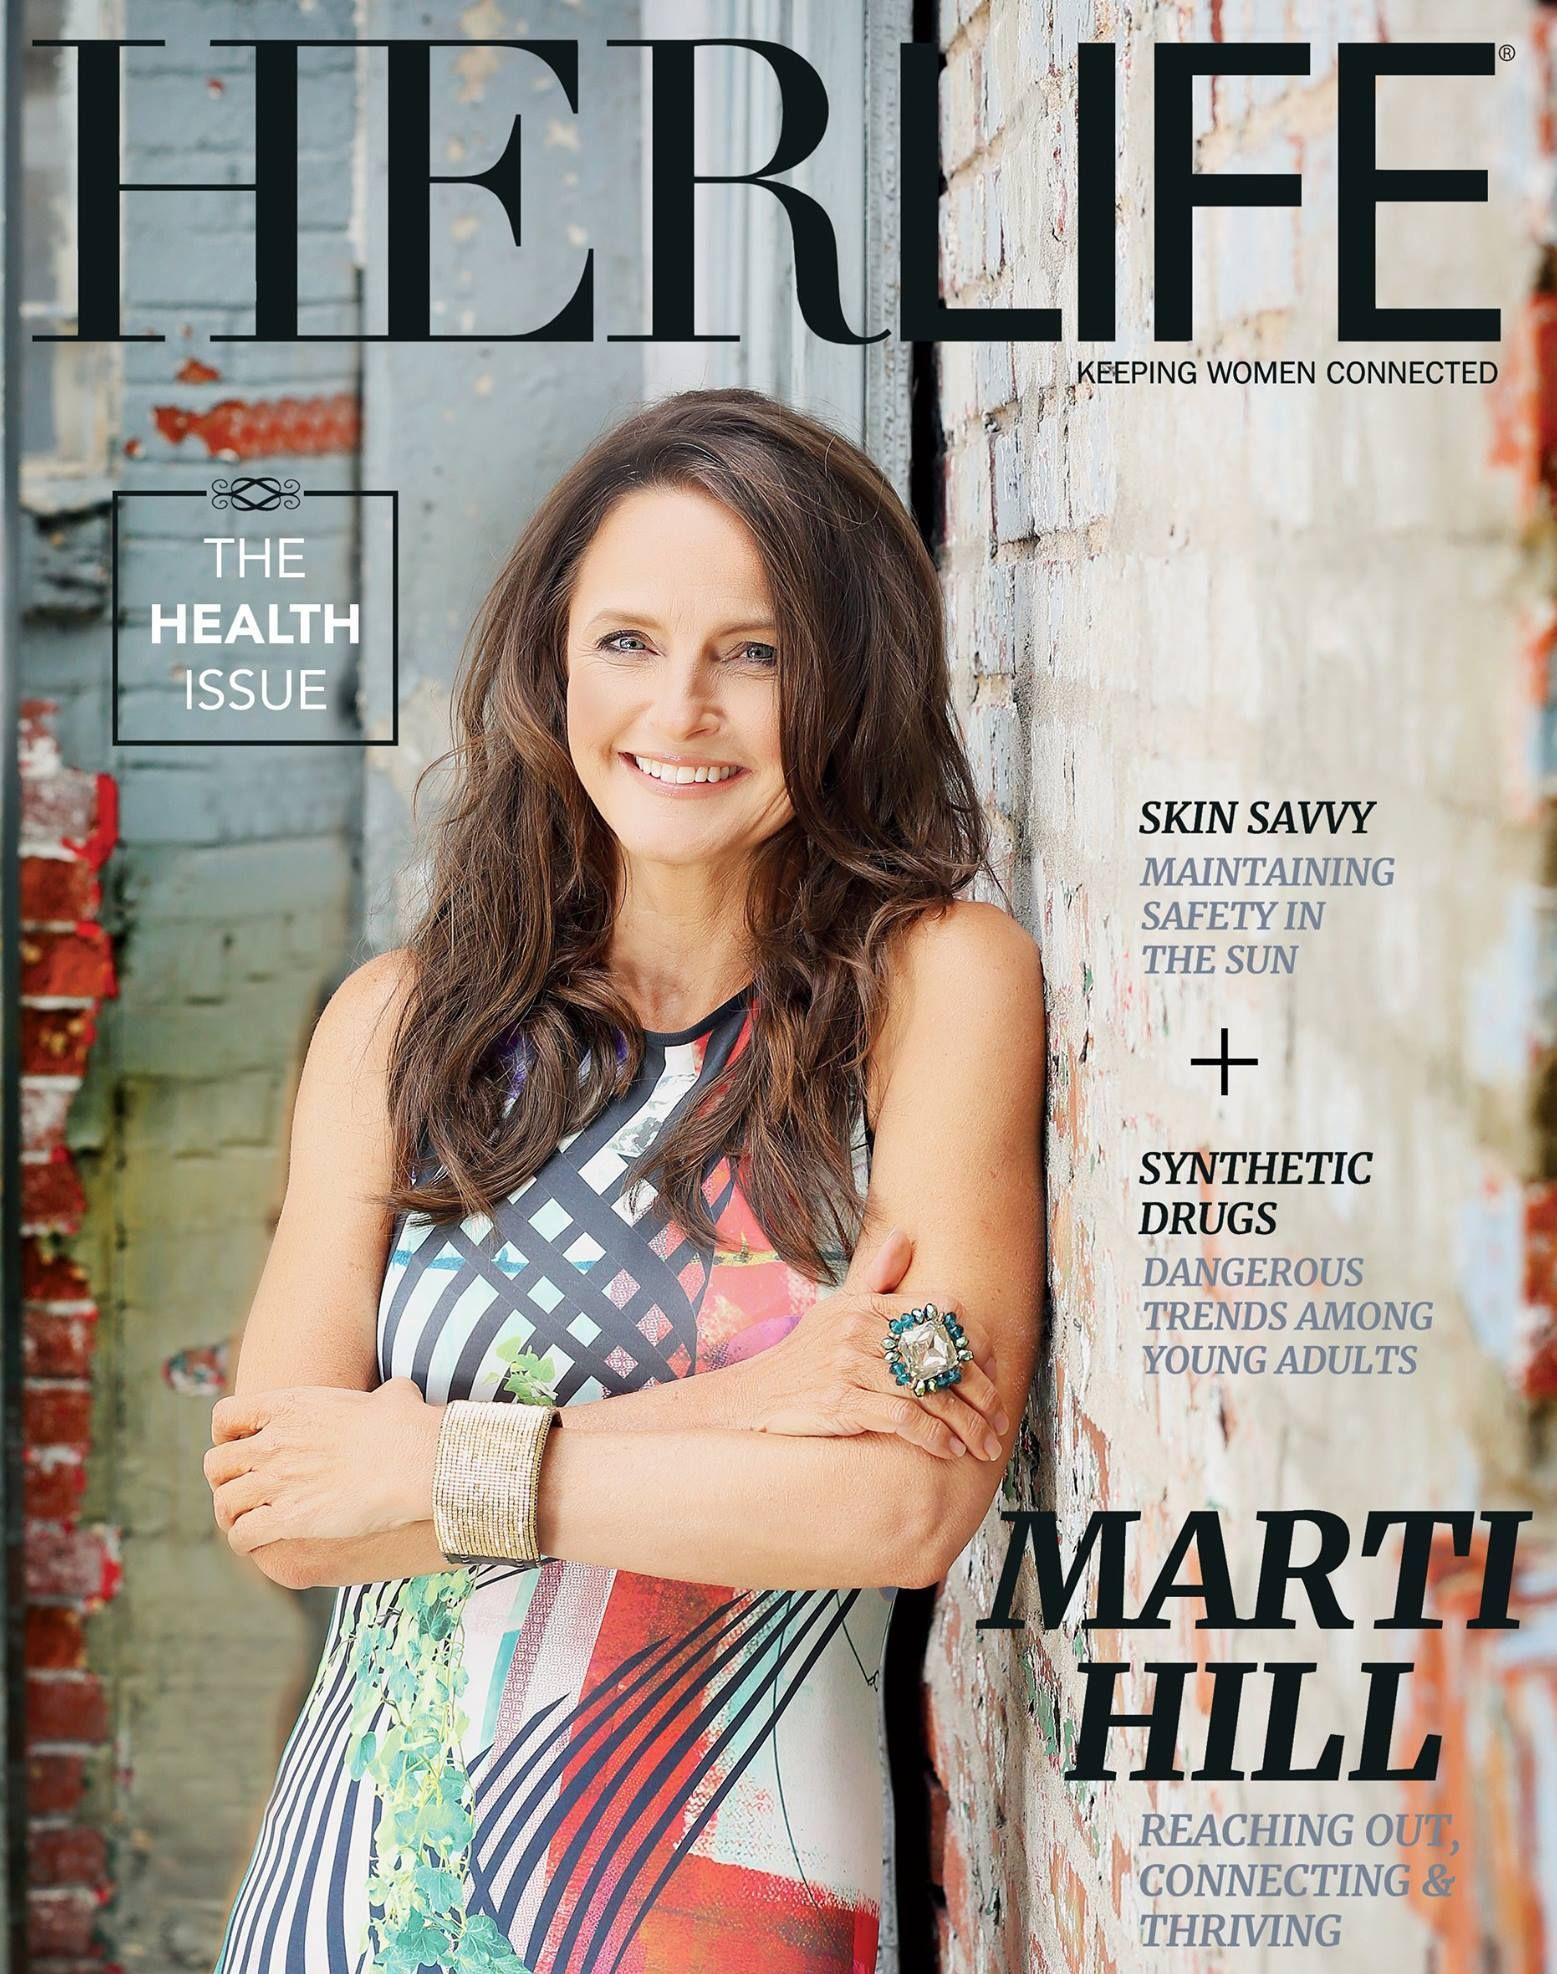 July 2014 The Health Issue featuring Marti Hill Women